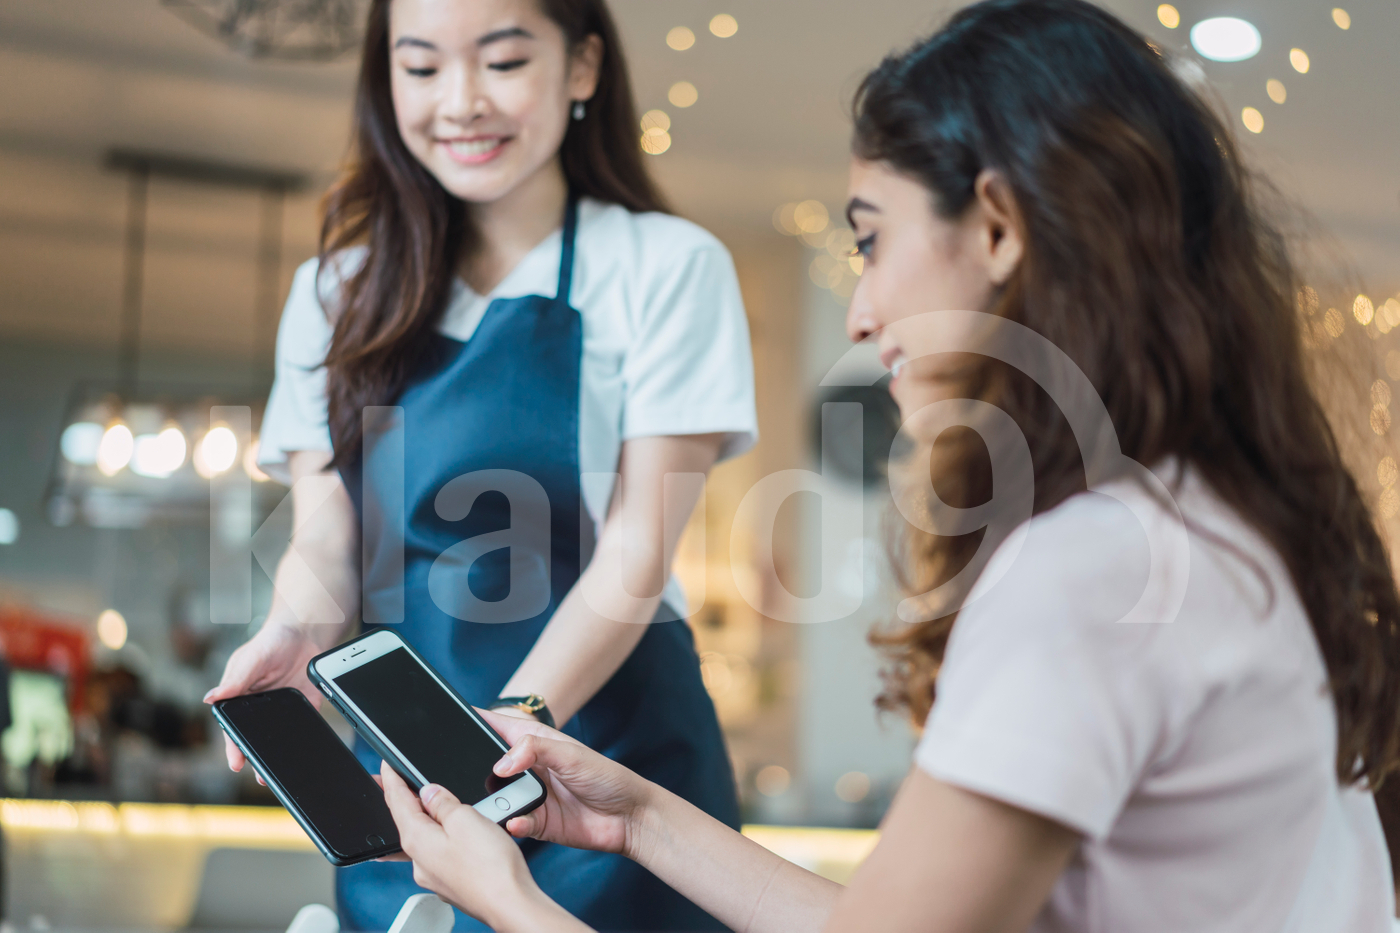 Young adult woman making payment through smartphone at restaurant